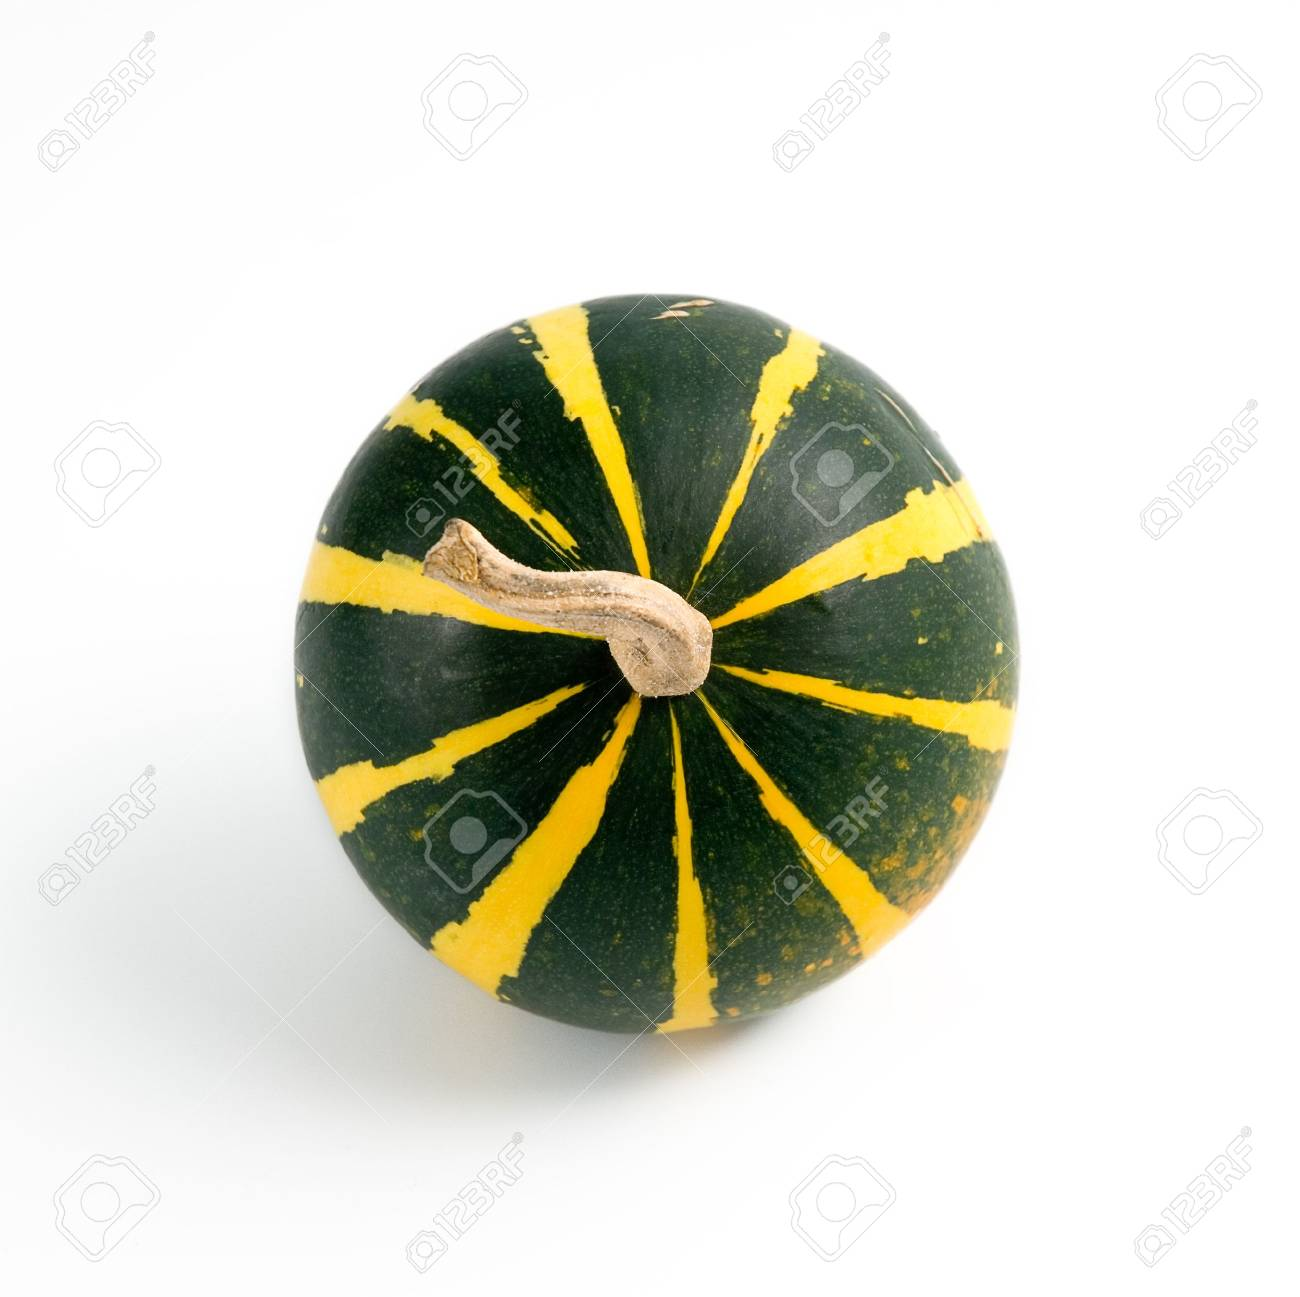 striped pumpkin 1 Stock Photo - 5862182